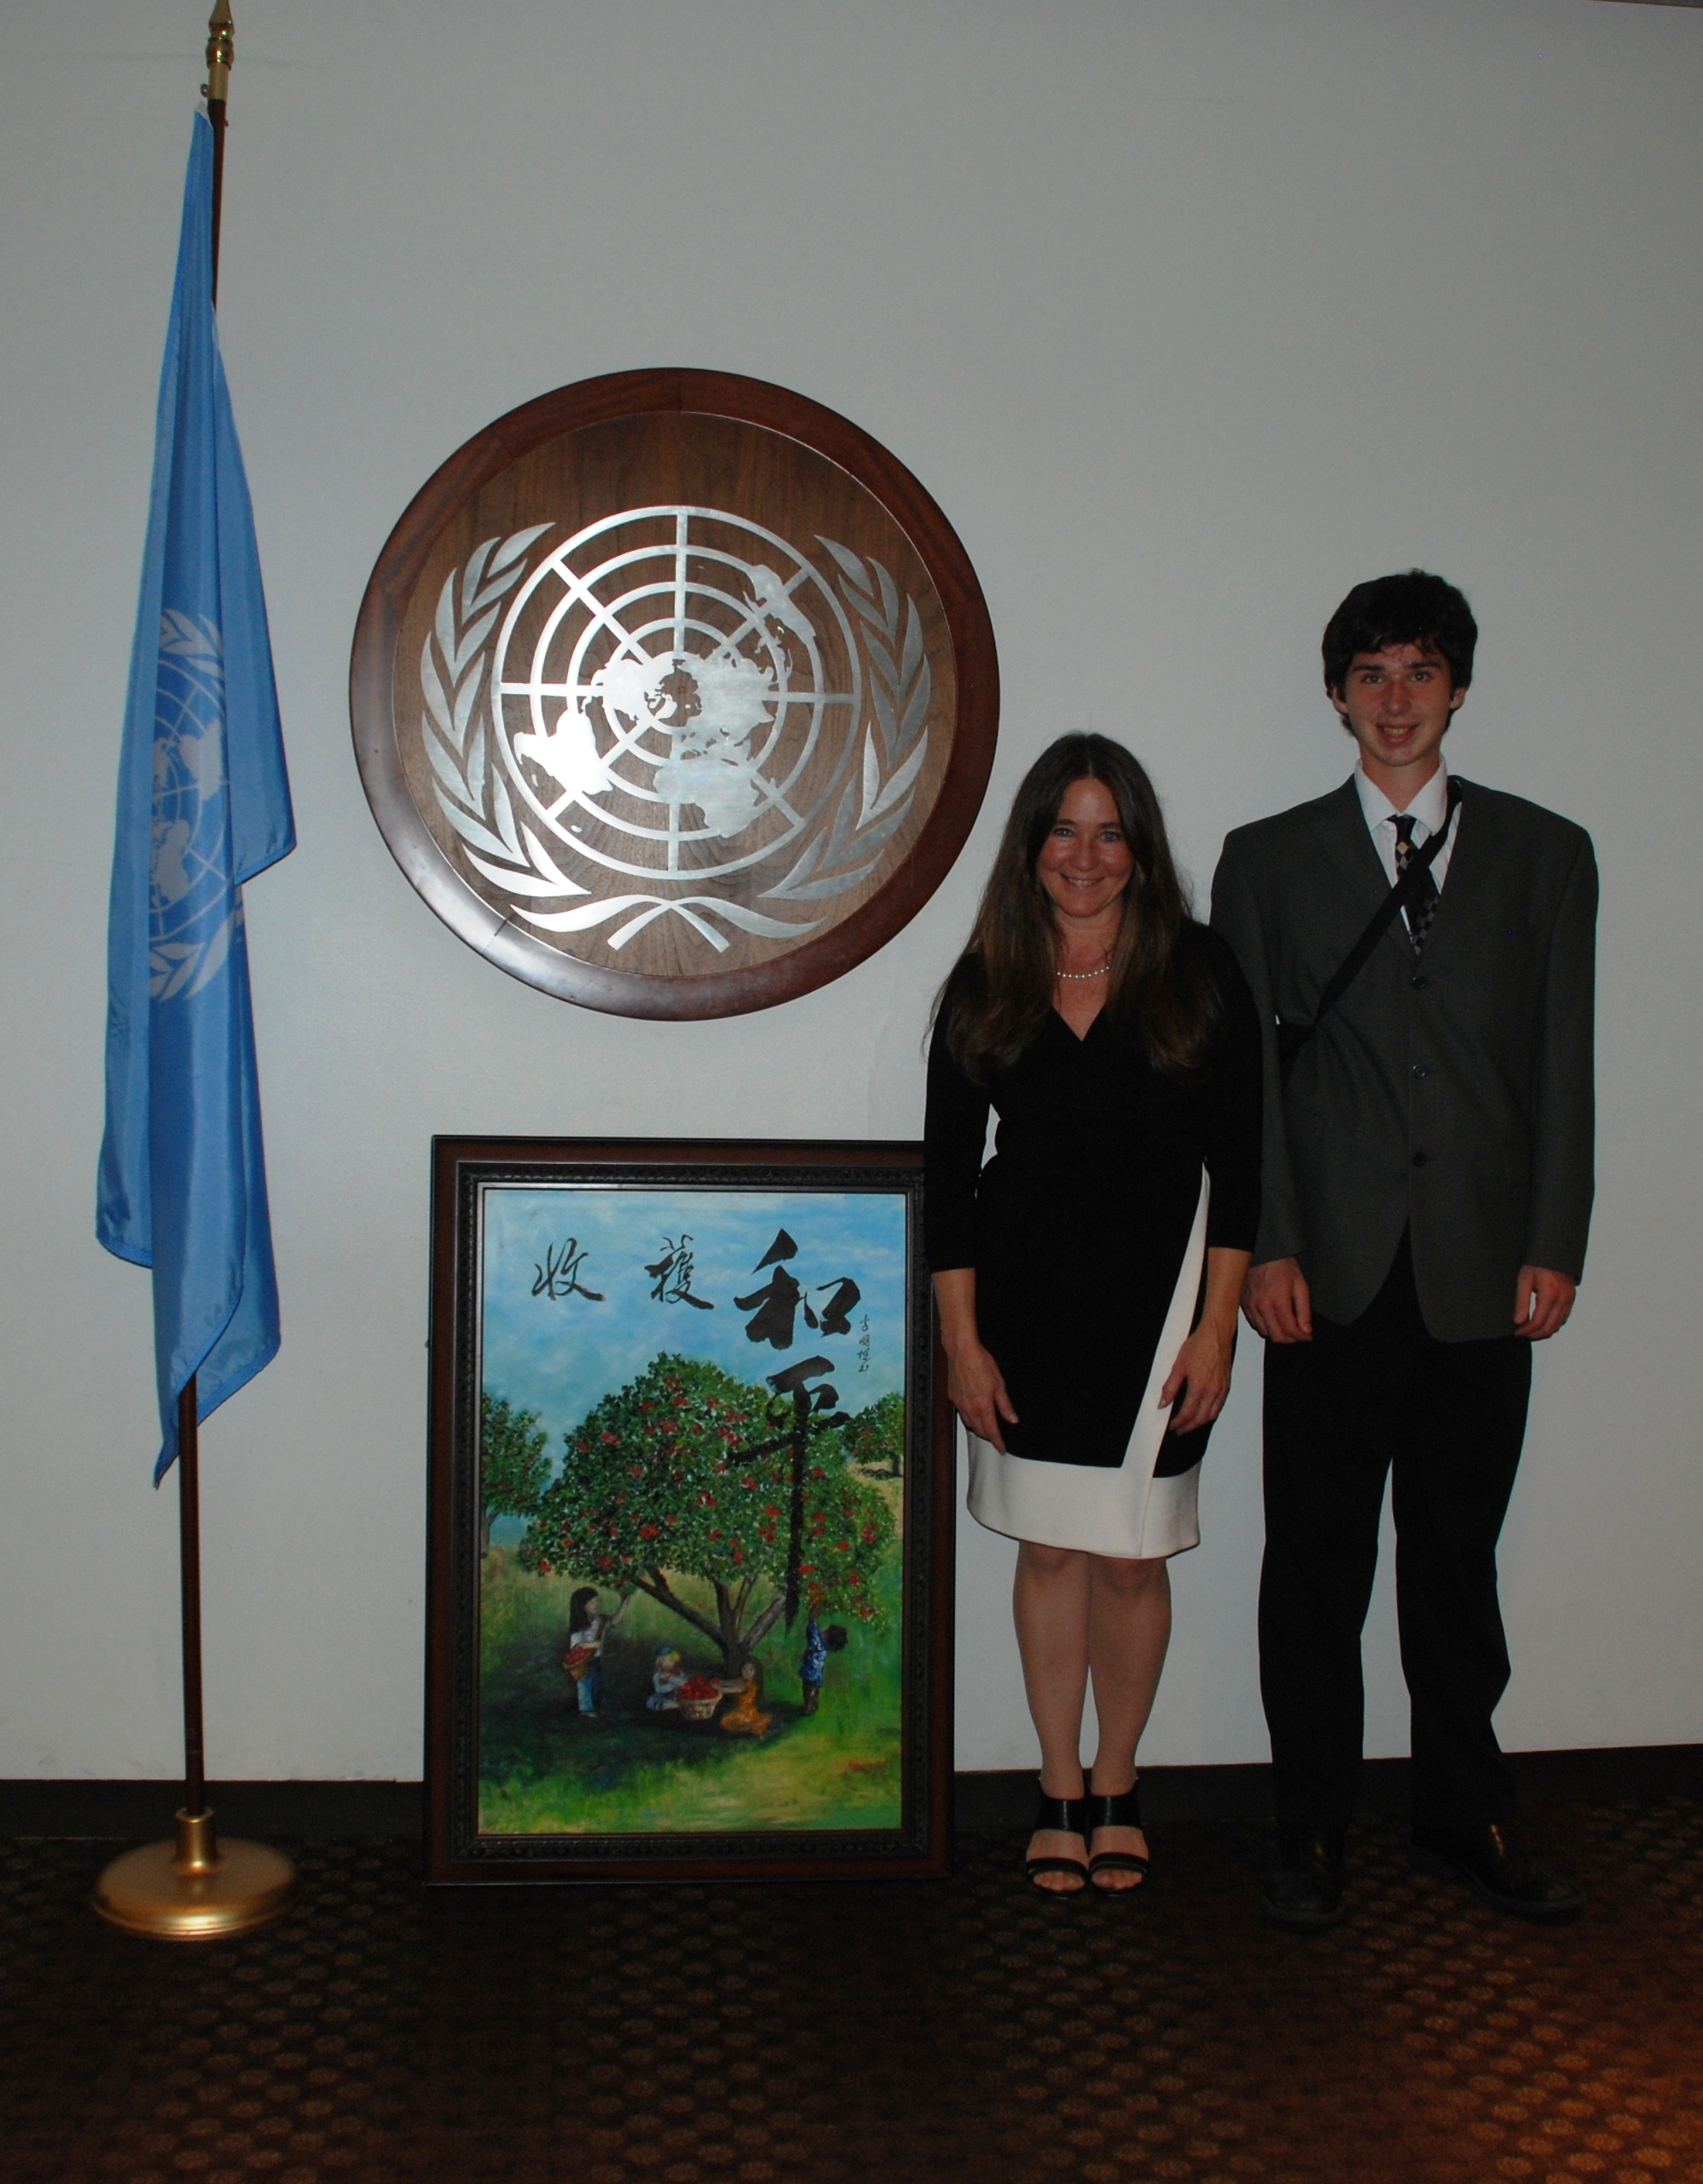 Debra Stasiak and her son Benjamin are shown here at the UNWG's official calendar launch